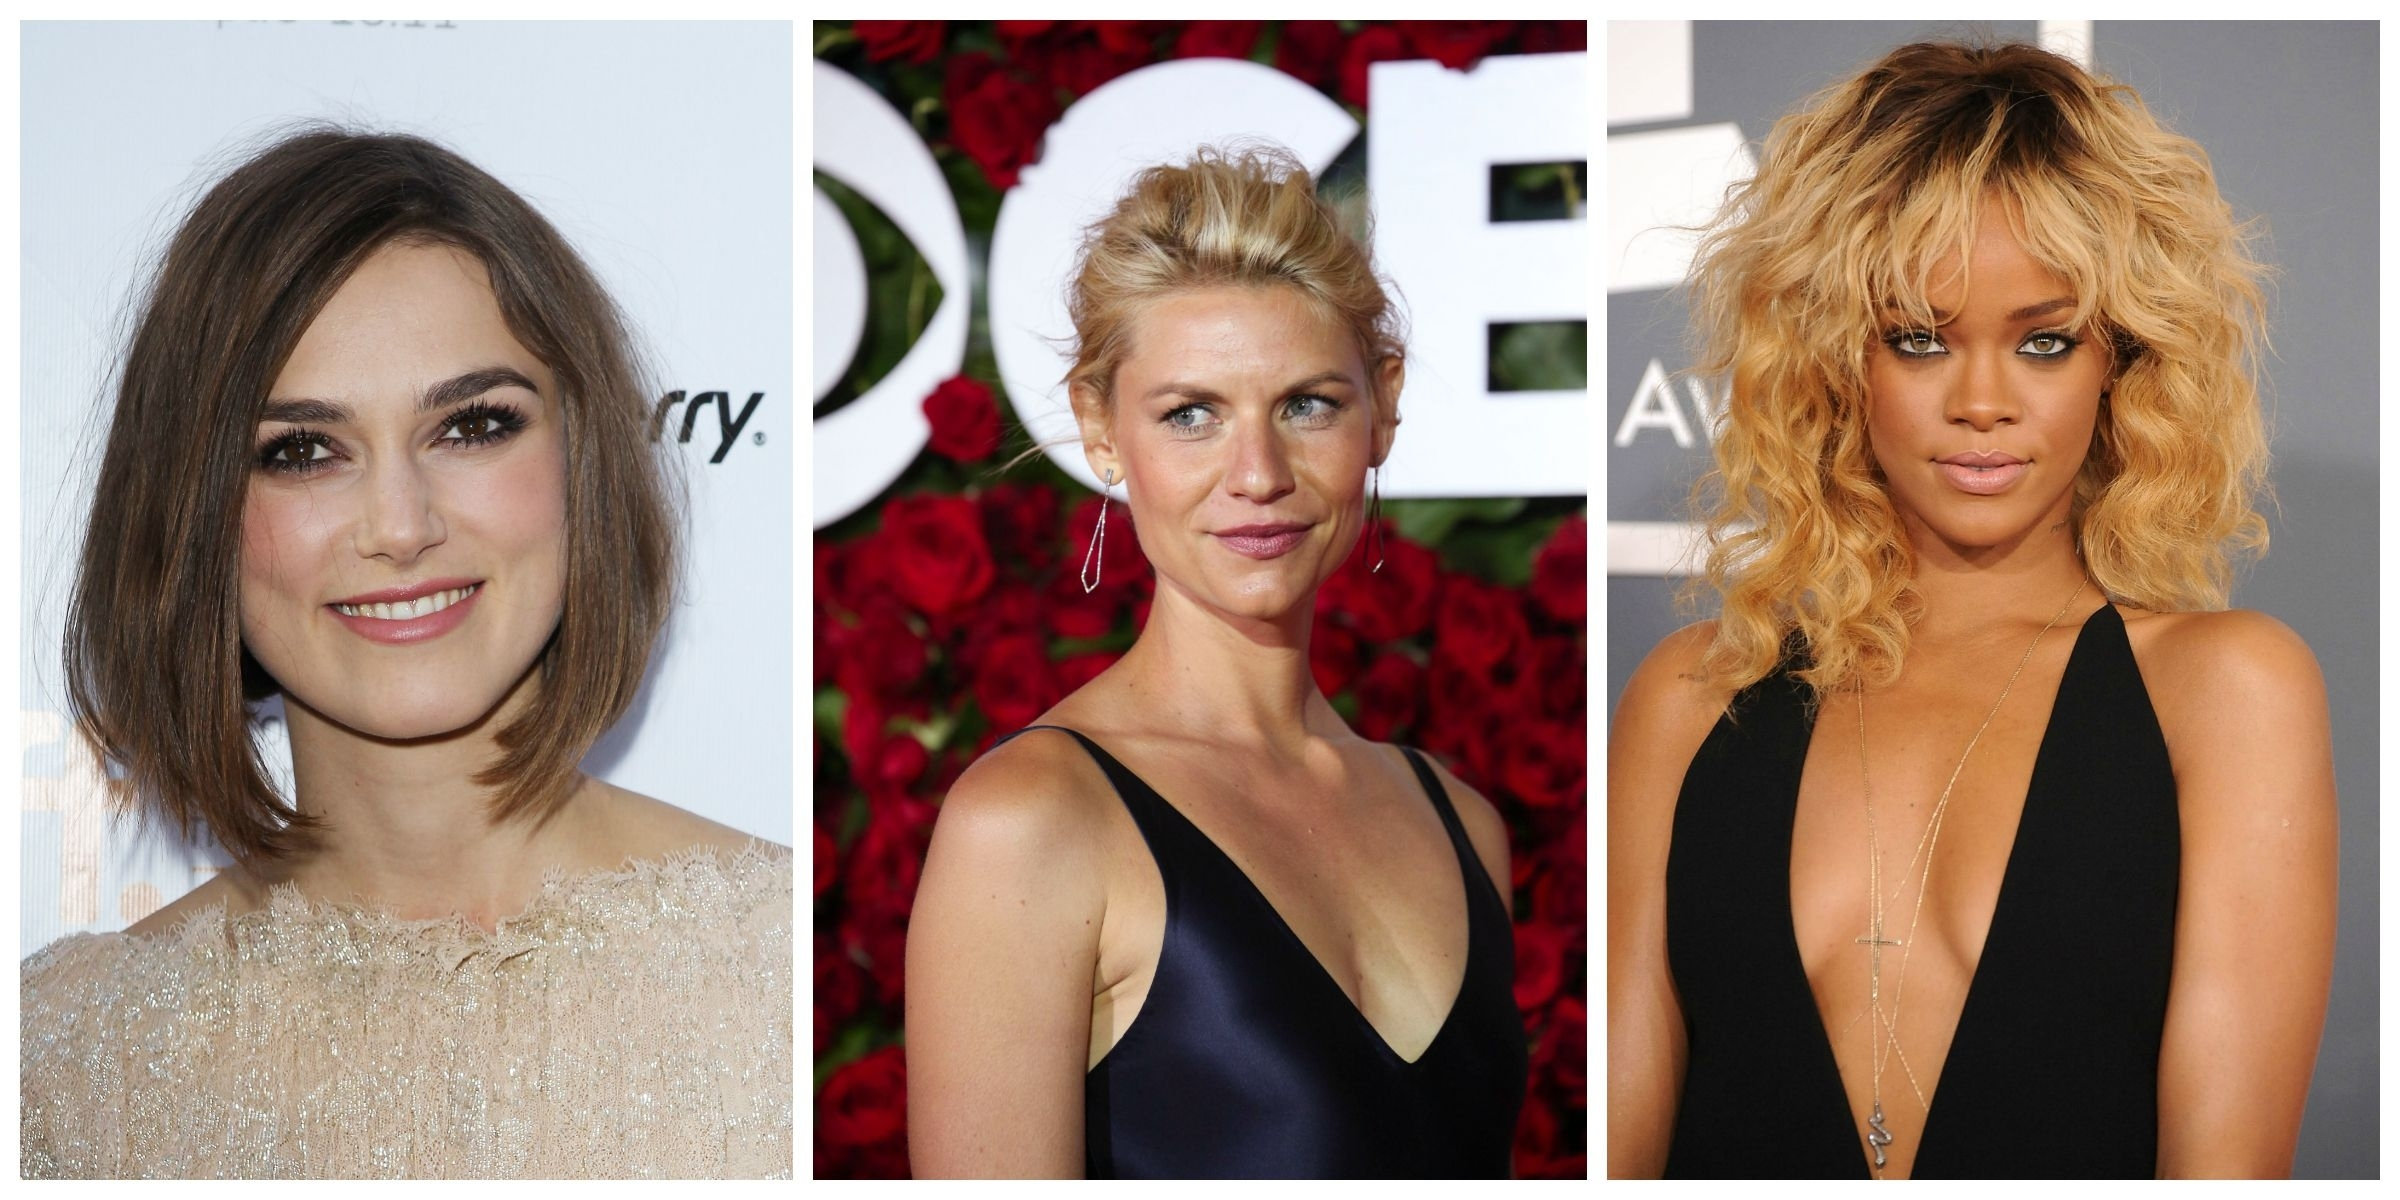 The 13 Best Hairstyles For Square Faces within Haircuts For Square Face Big Nose